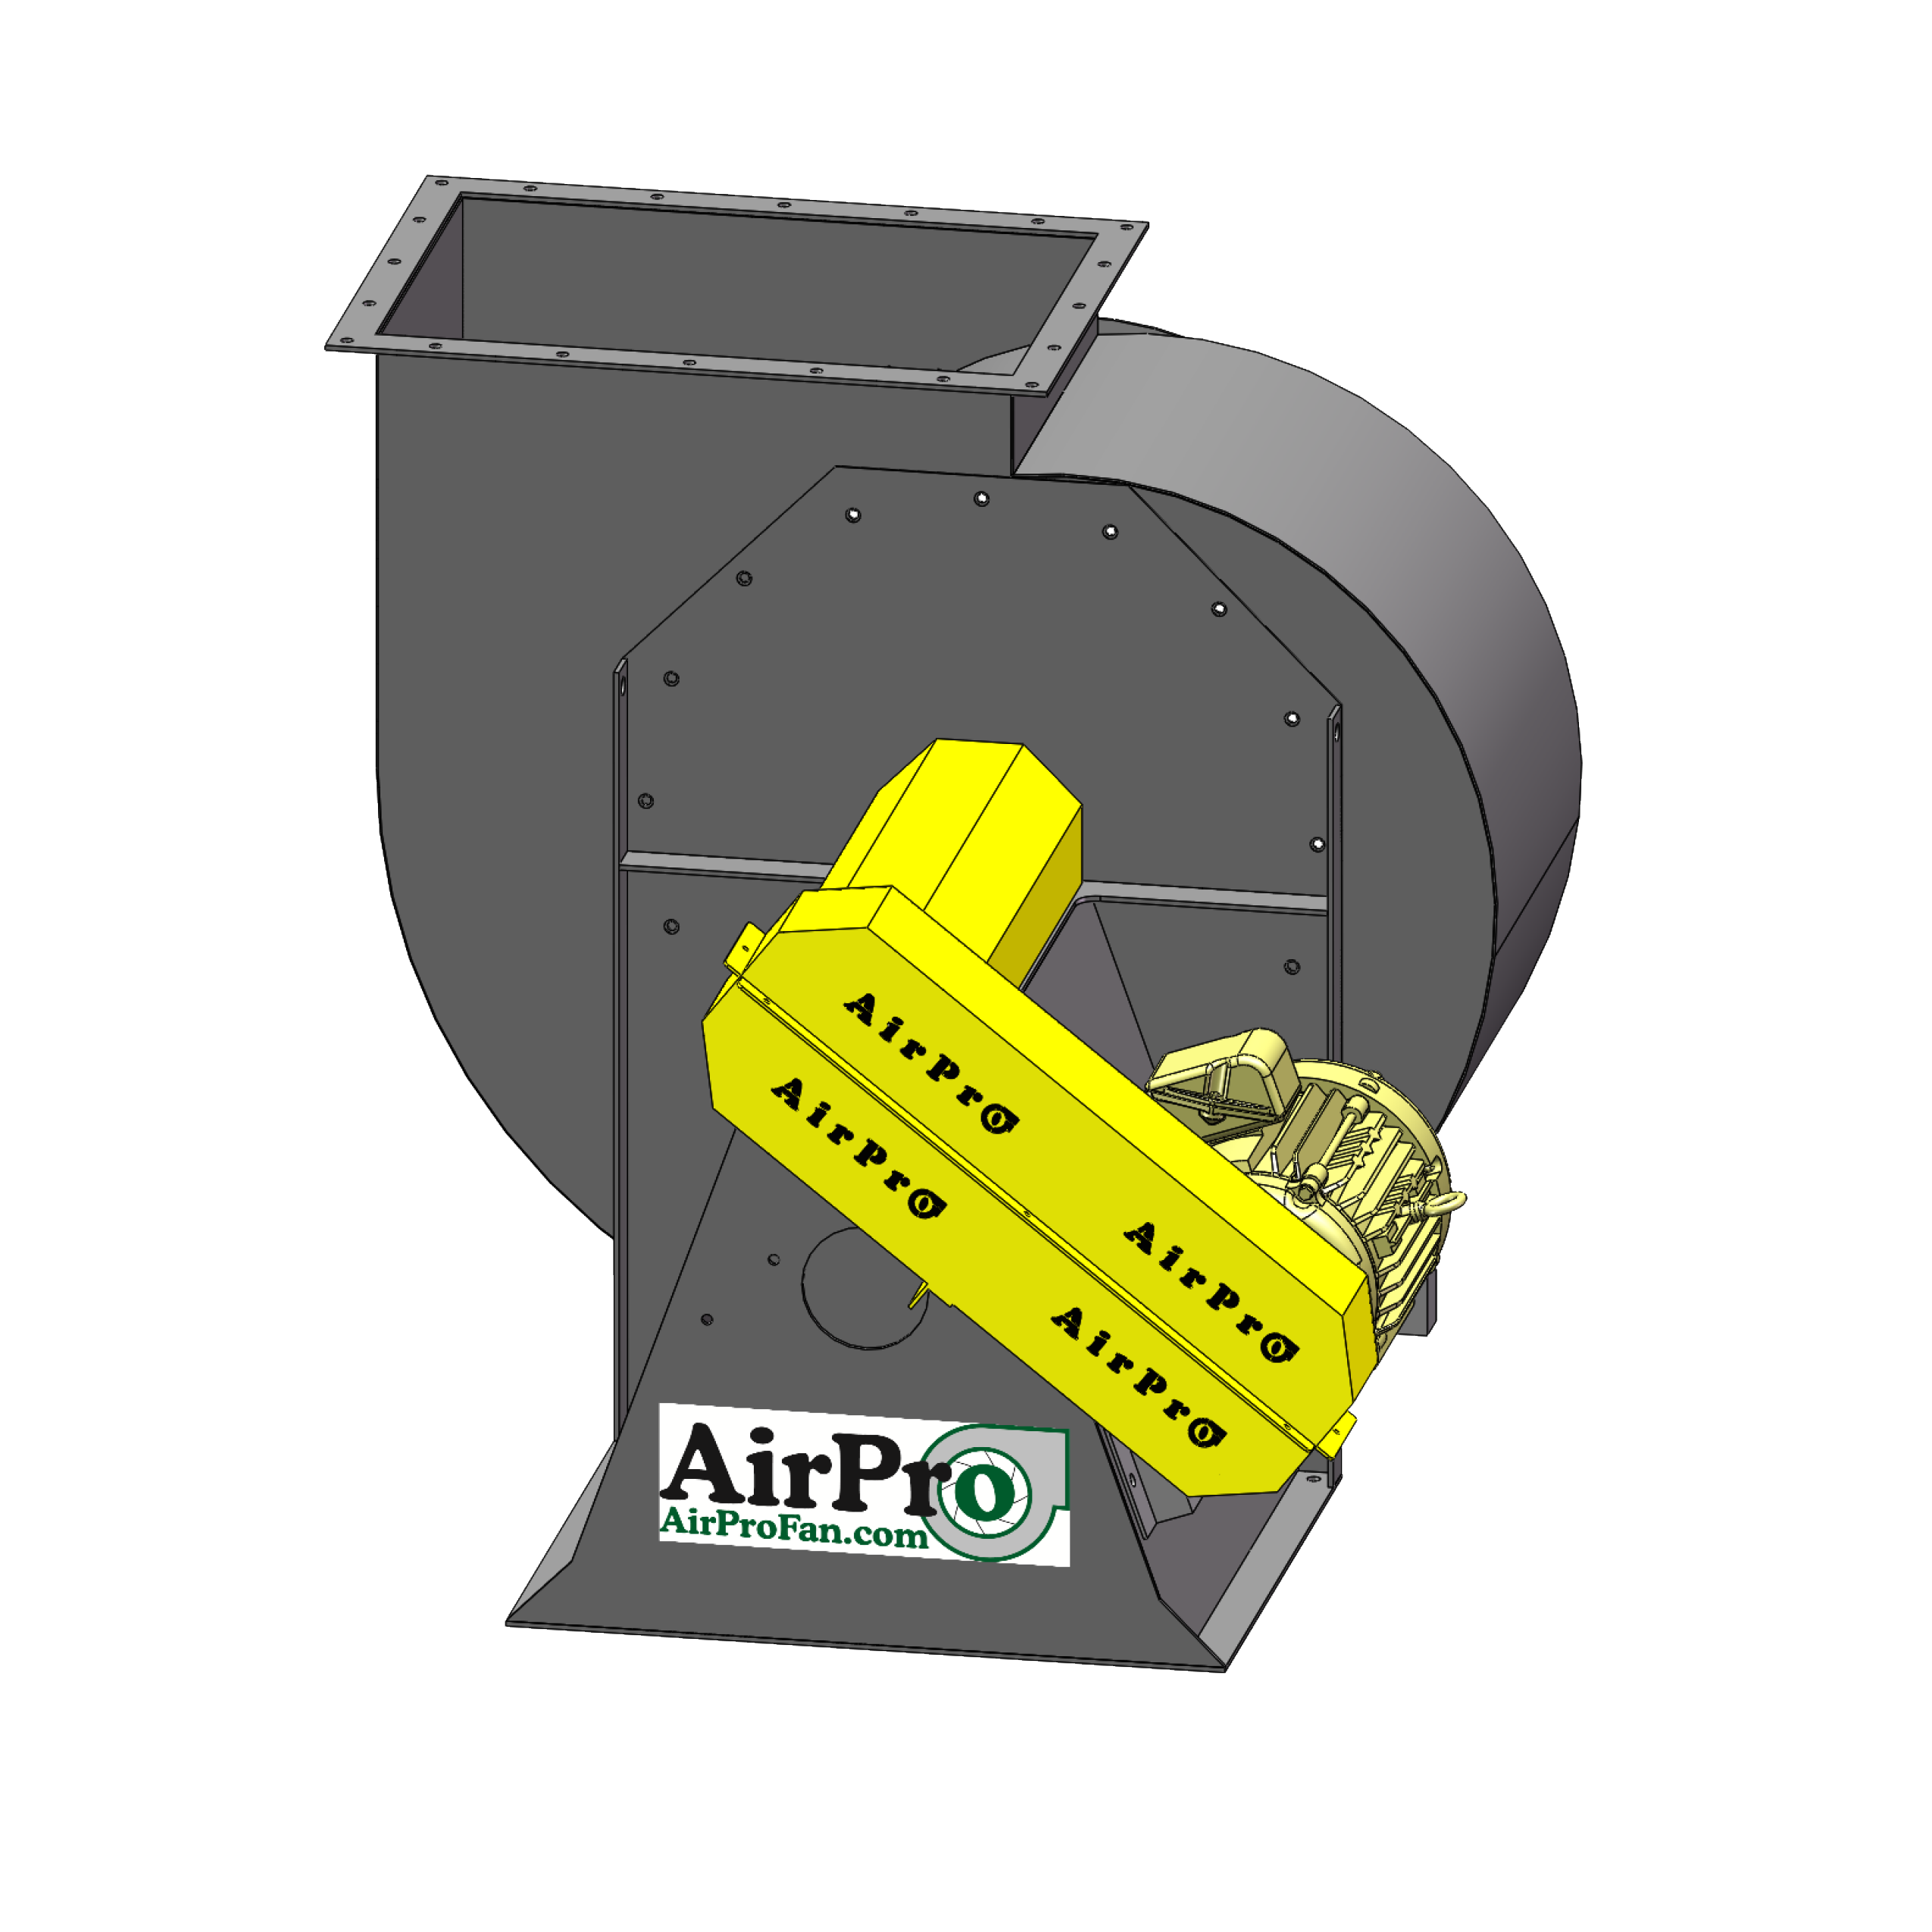 Airfoil Fan AirPro Centrifugal Industrial Fans & Blowers #C9C902